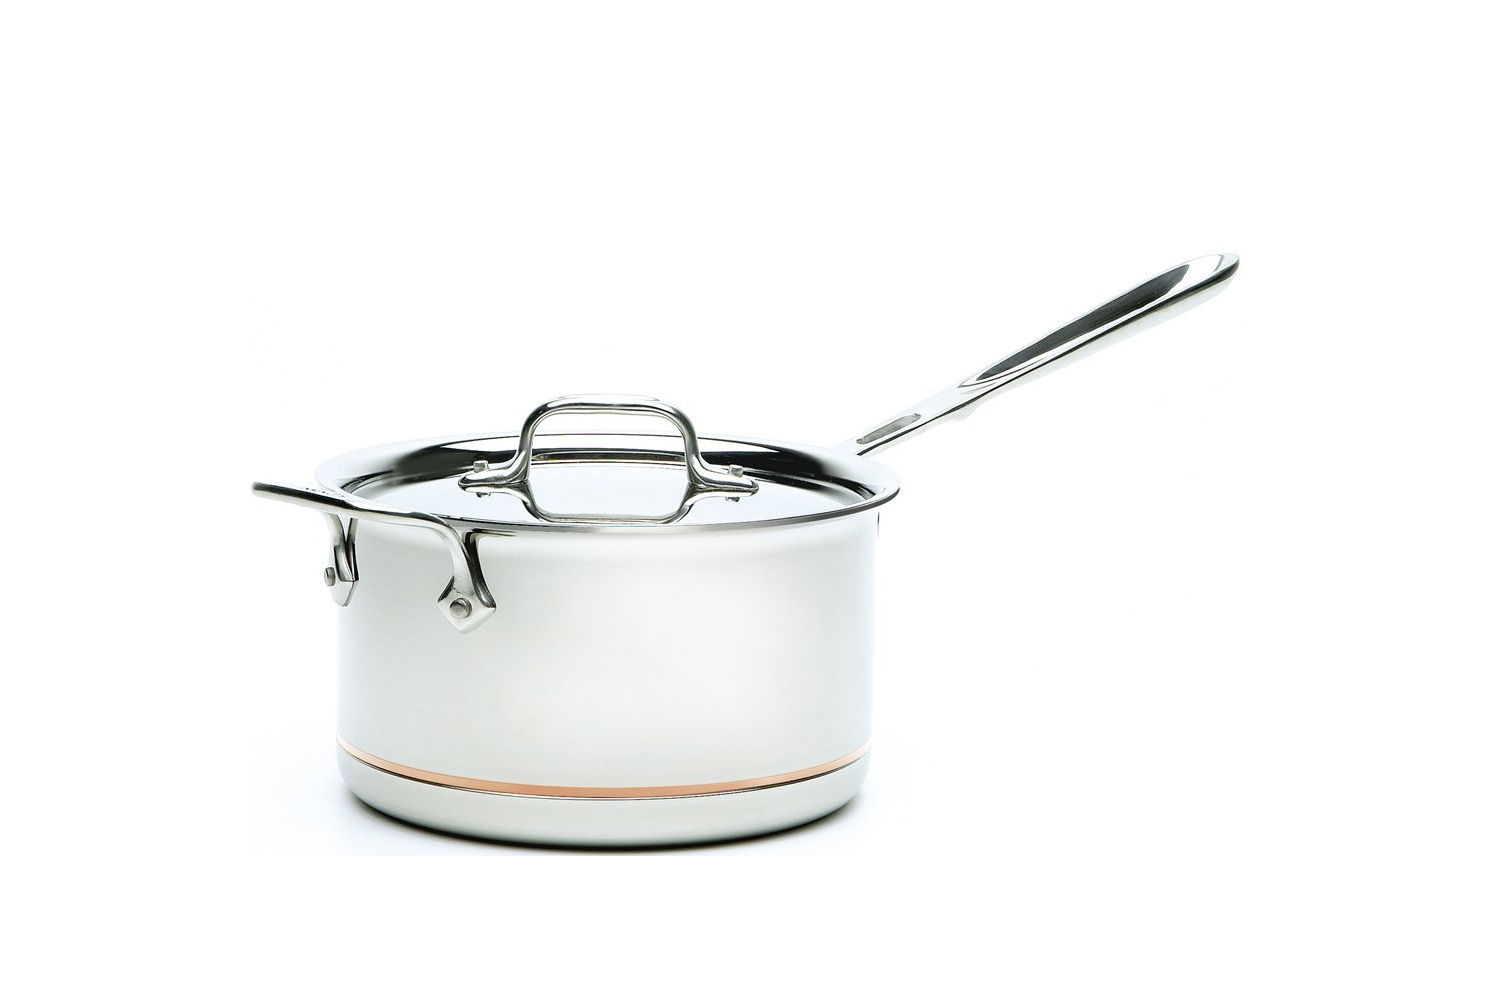 All-Clad Copper-Core 4 qt. Sauce Pan